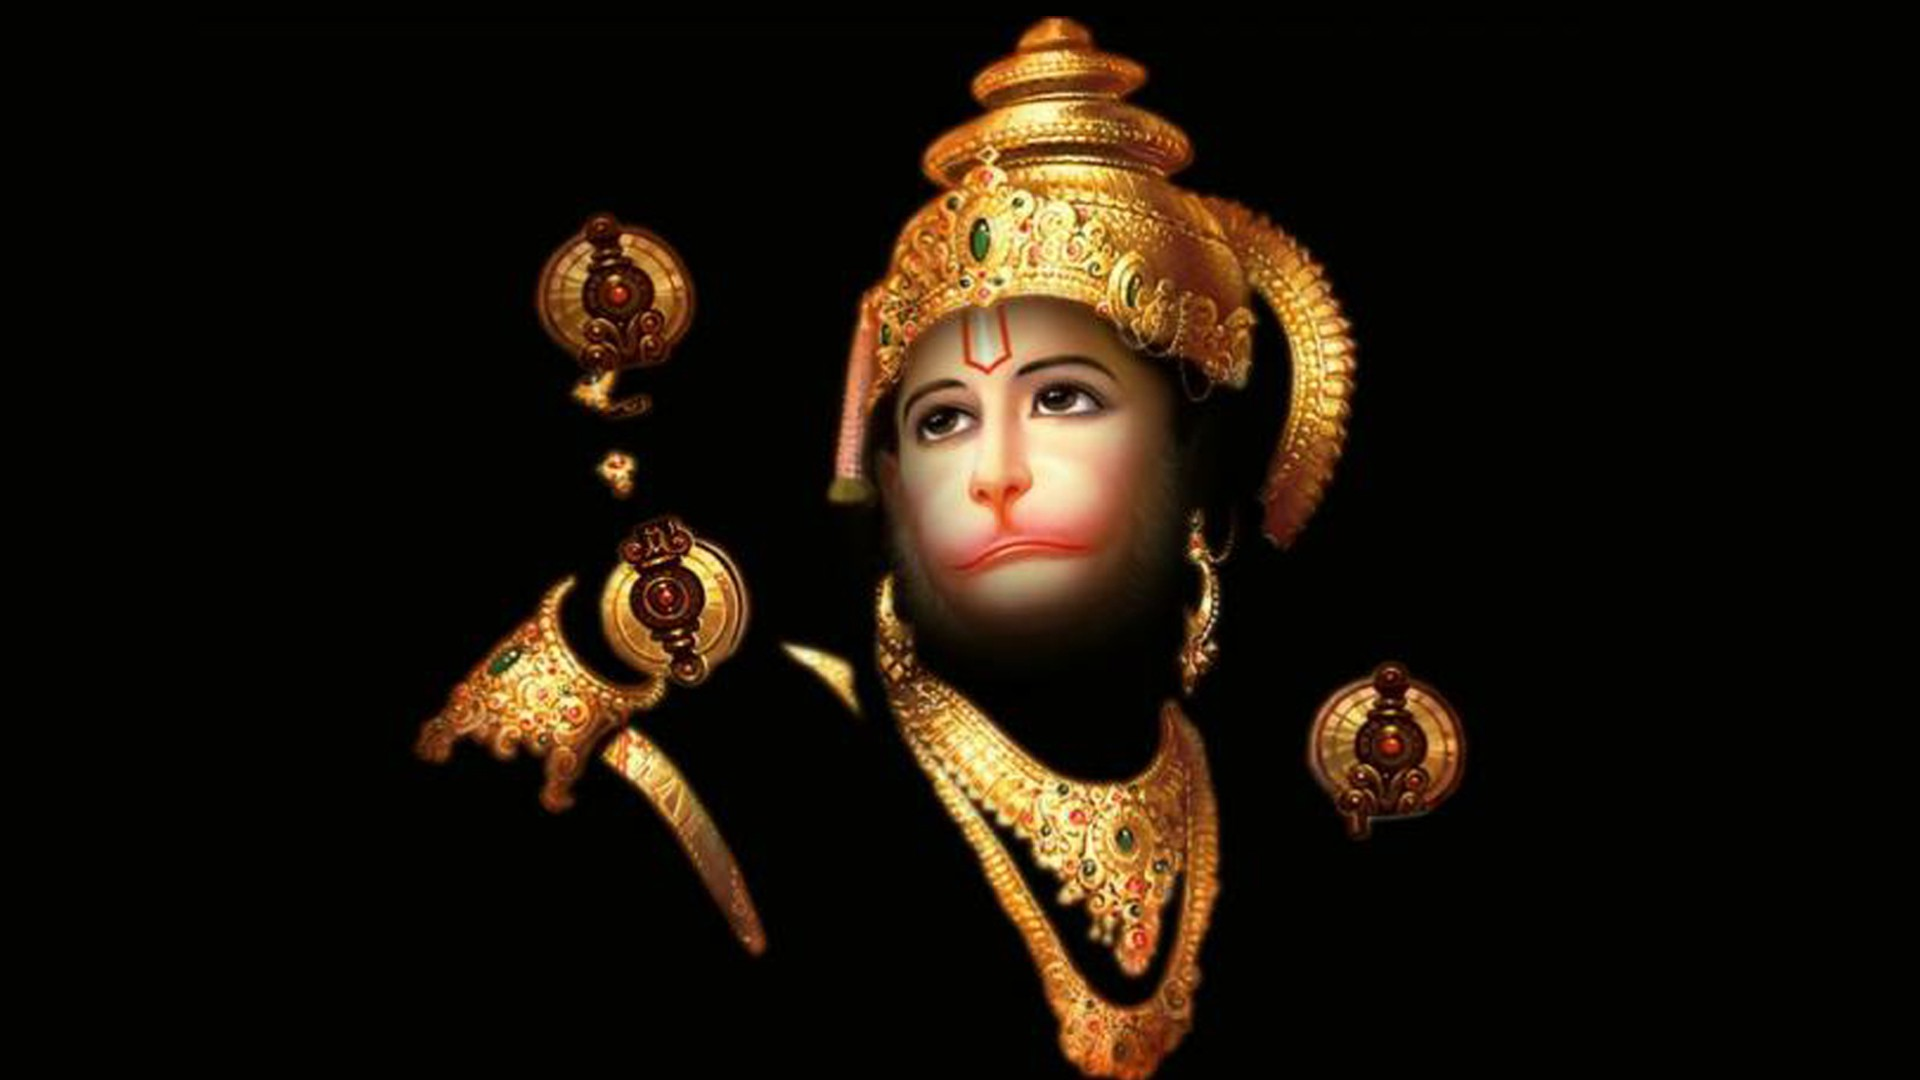 Lord krishna hd wallpapers for iphone68